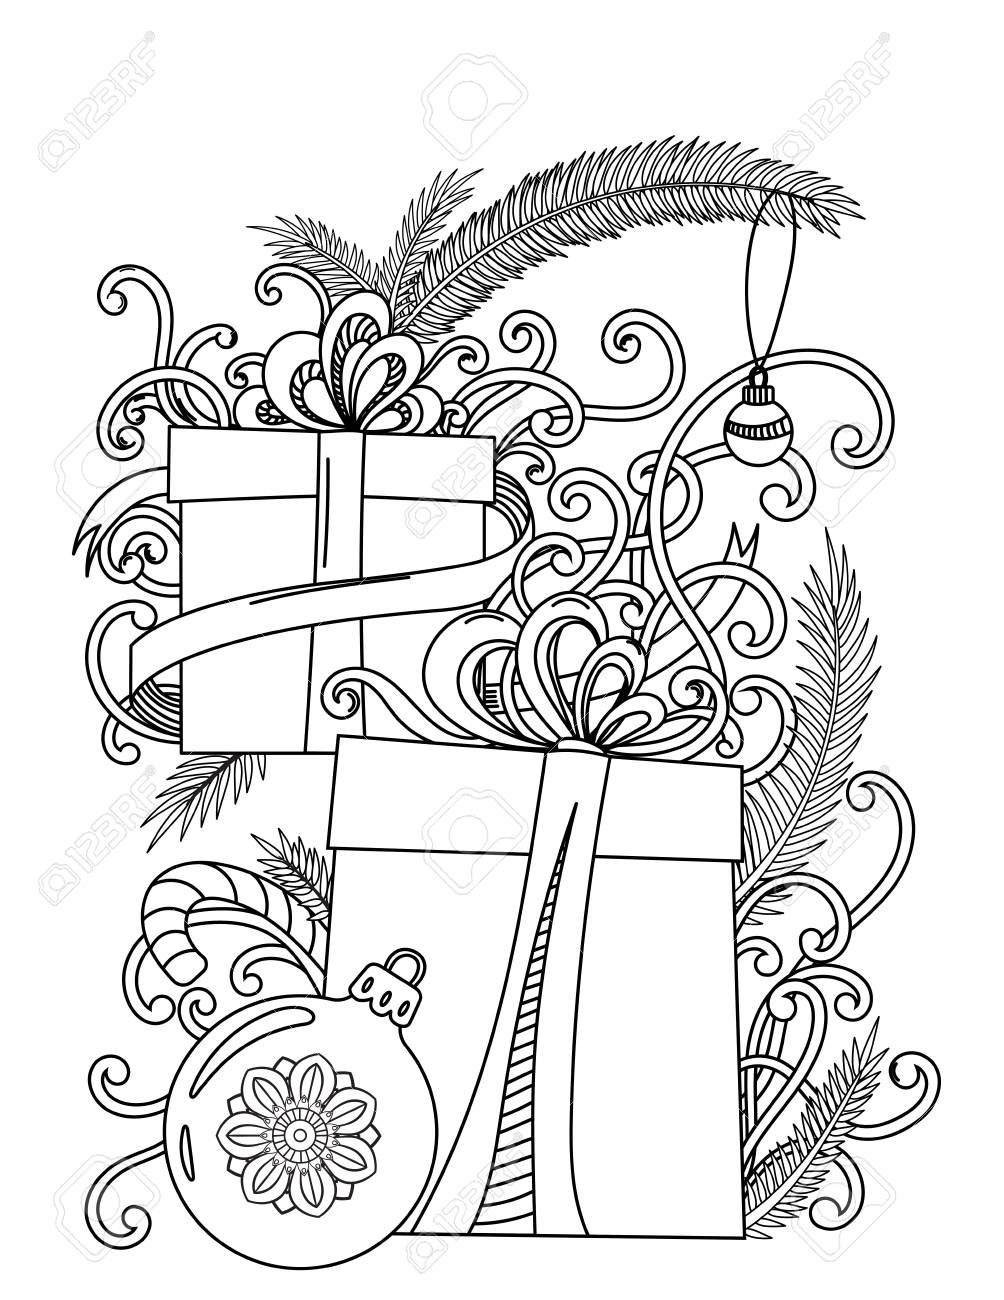 - Christmas Coloring Page. Adult Coloring Book. Holiday Gifts And